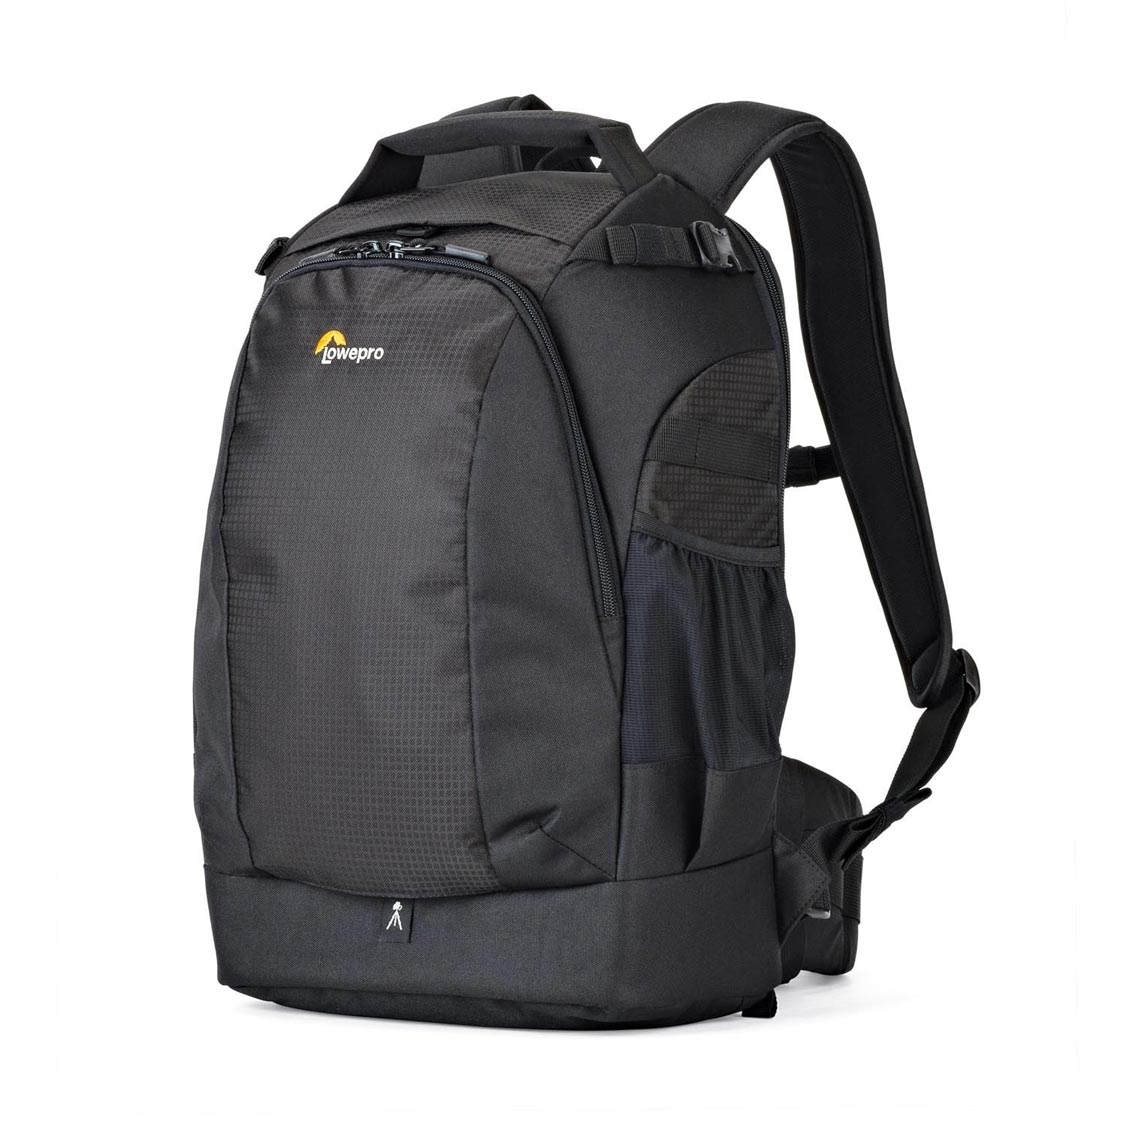 Lowepro Flipside 400 AW II Backpack